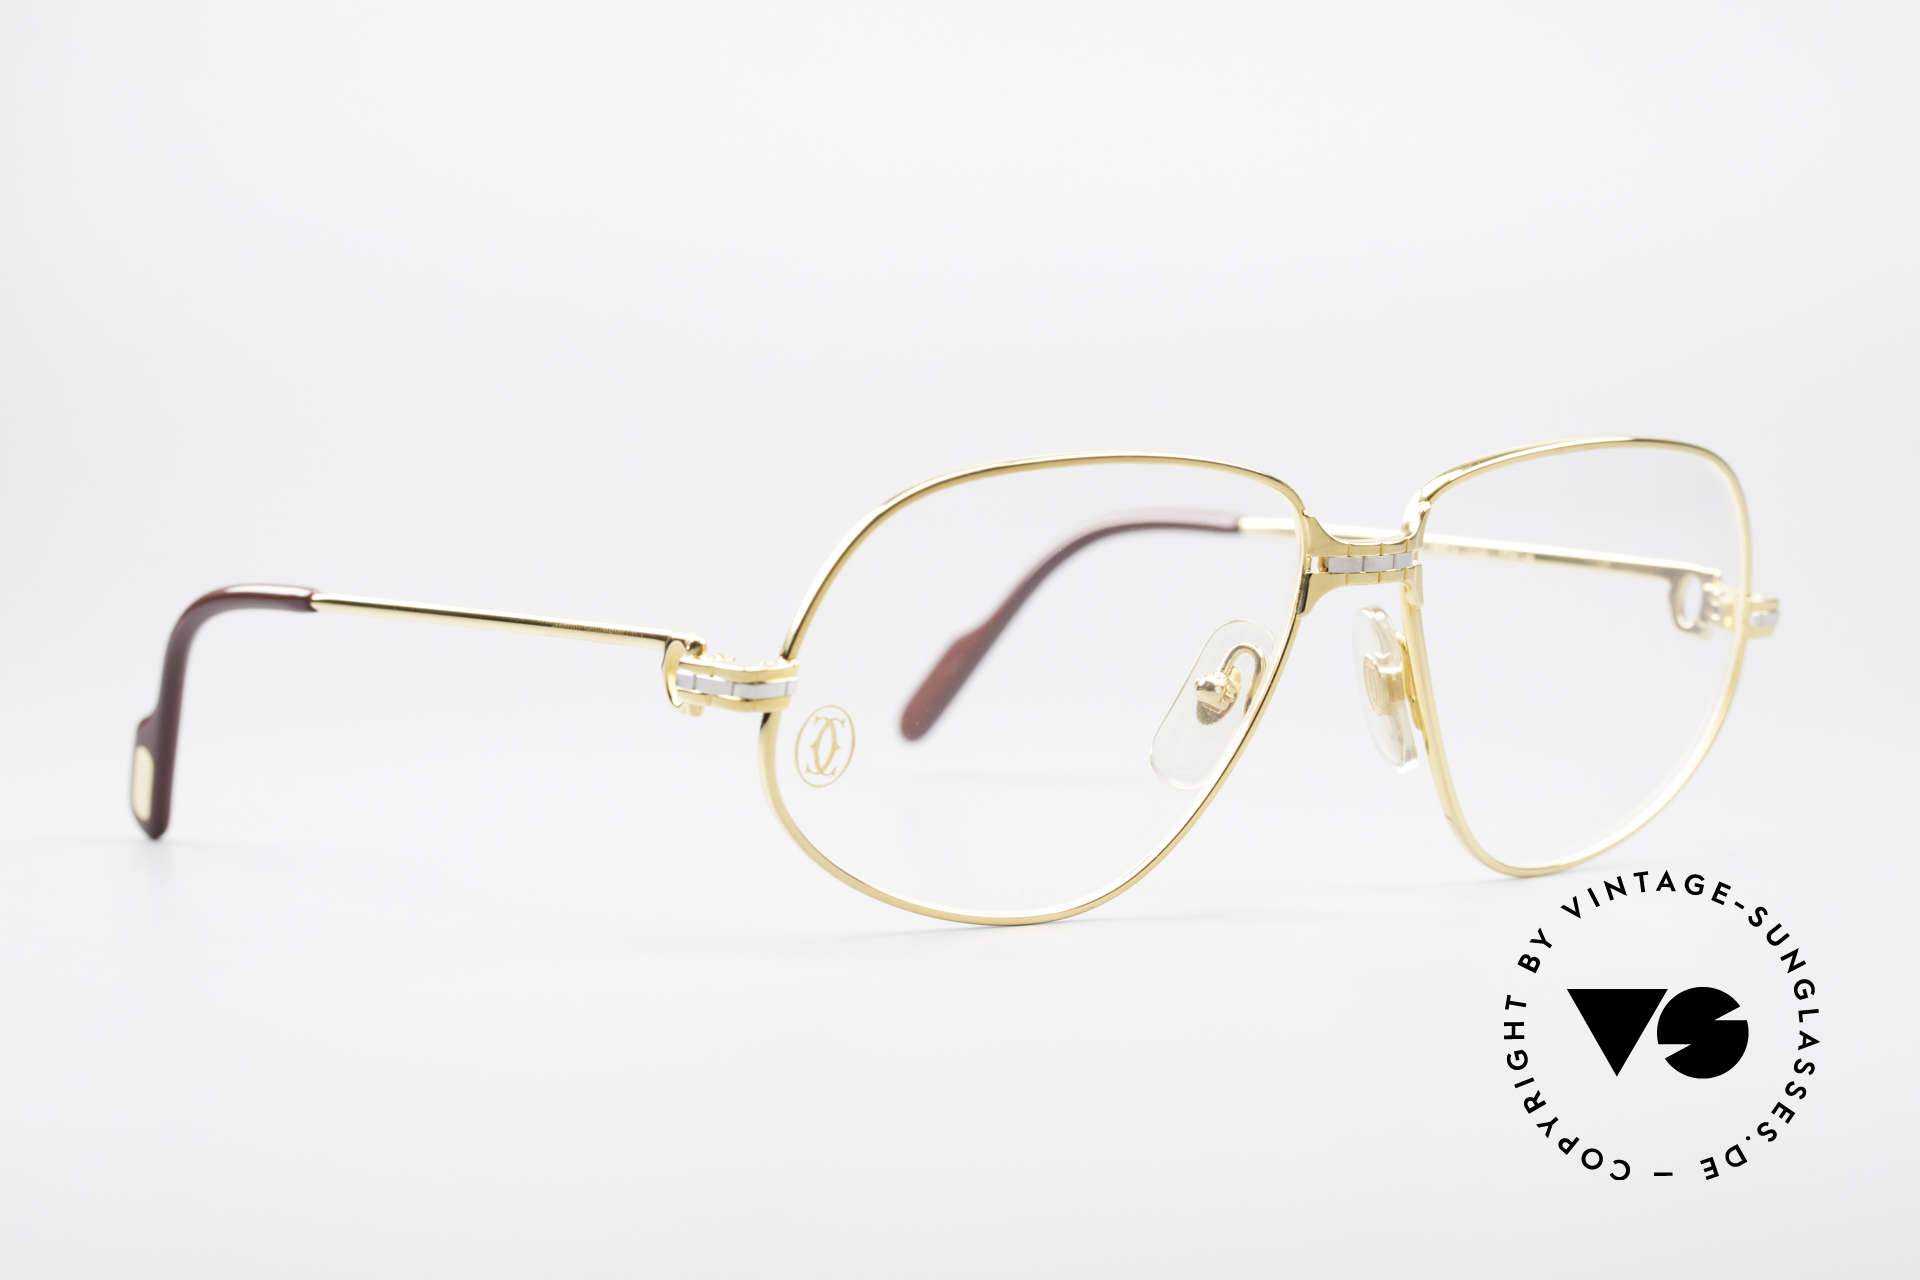 """Cartier Panthere G.M. - M 80's Luxury Vintage Eyeglasses, mod. """"Panthère"""" was launched in 1988 and made till 1997, Made for Men"""